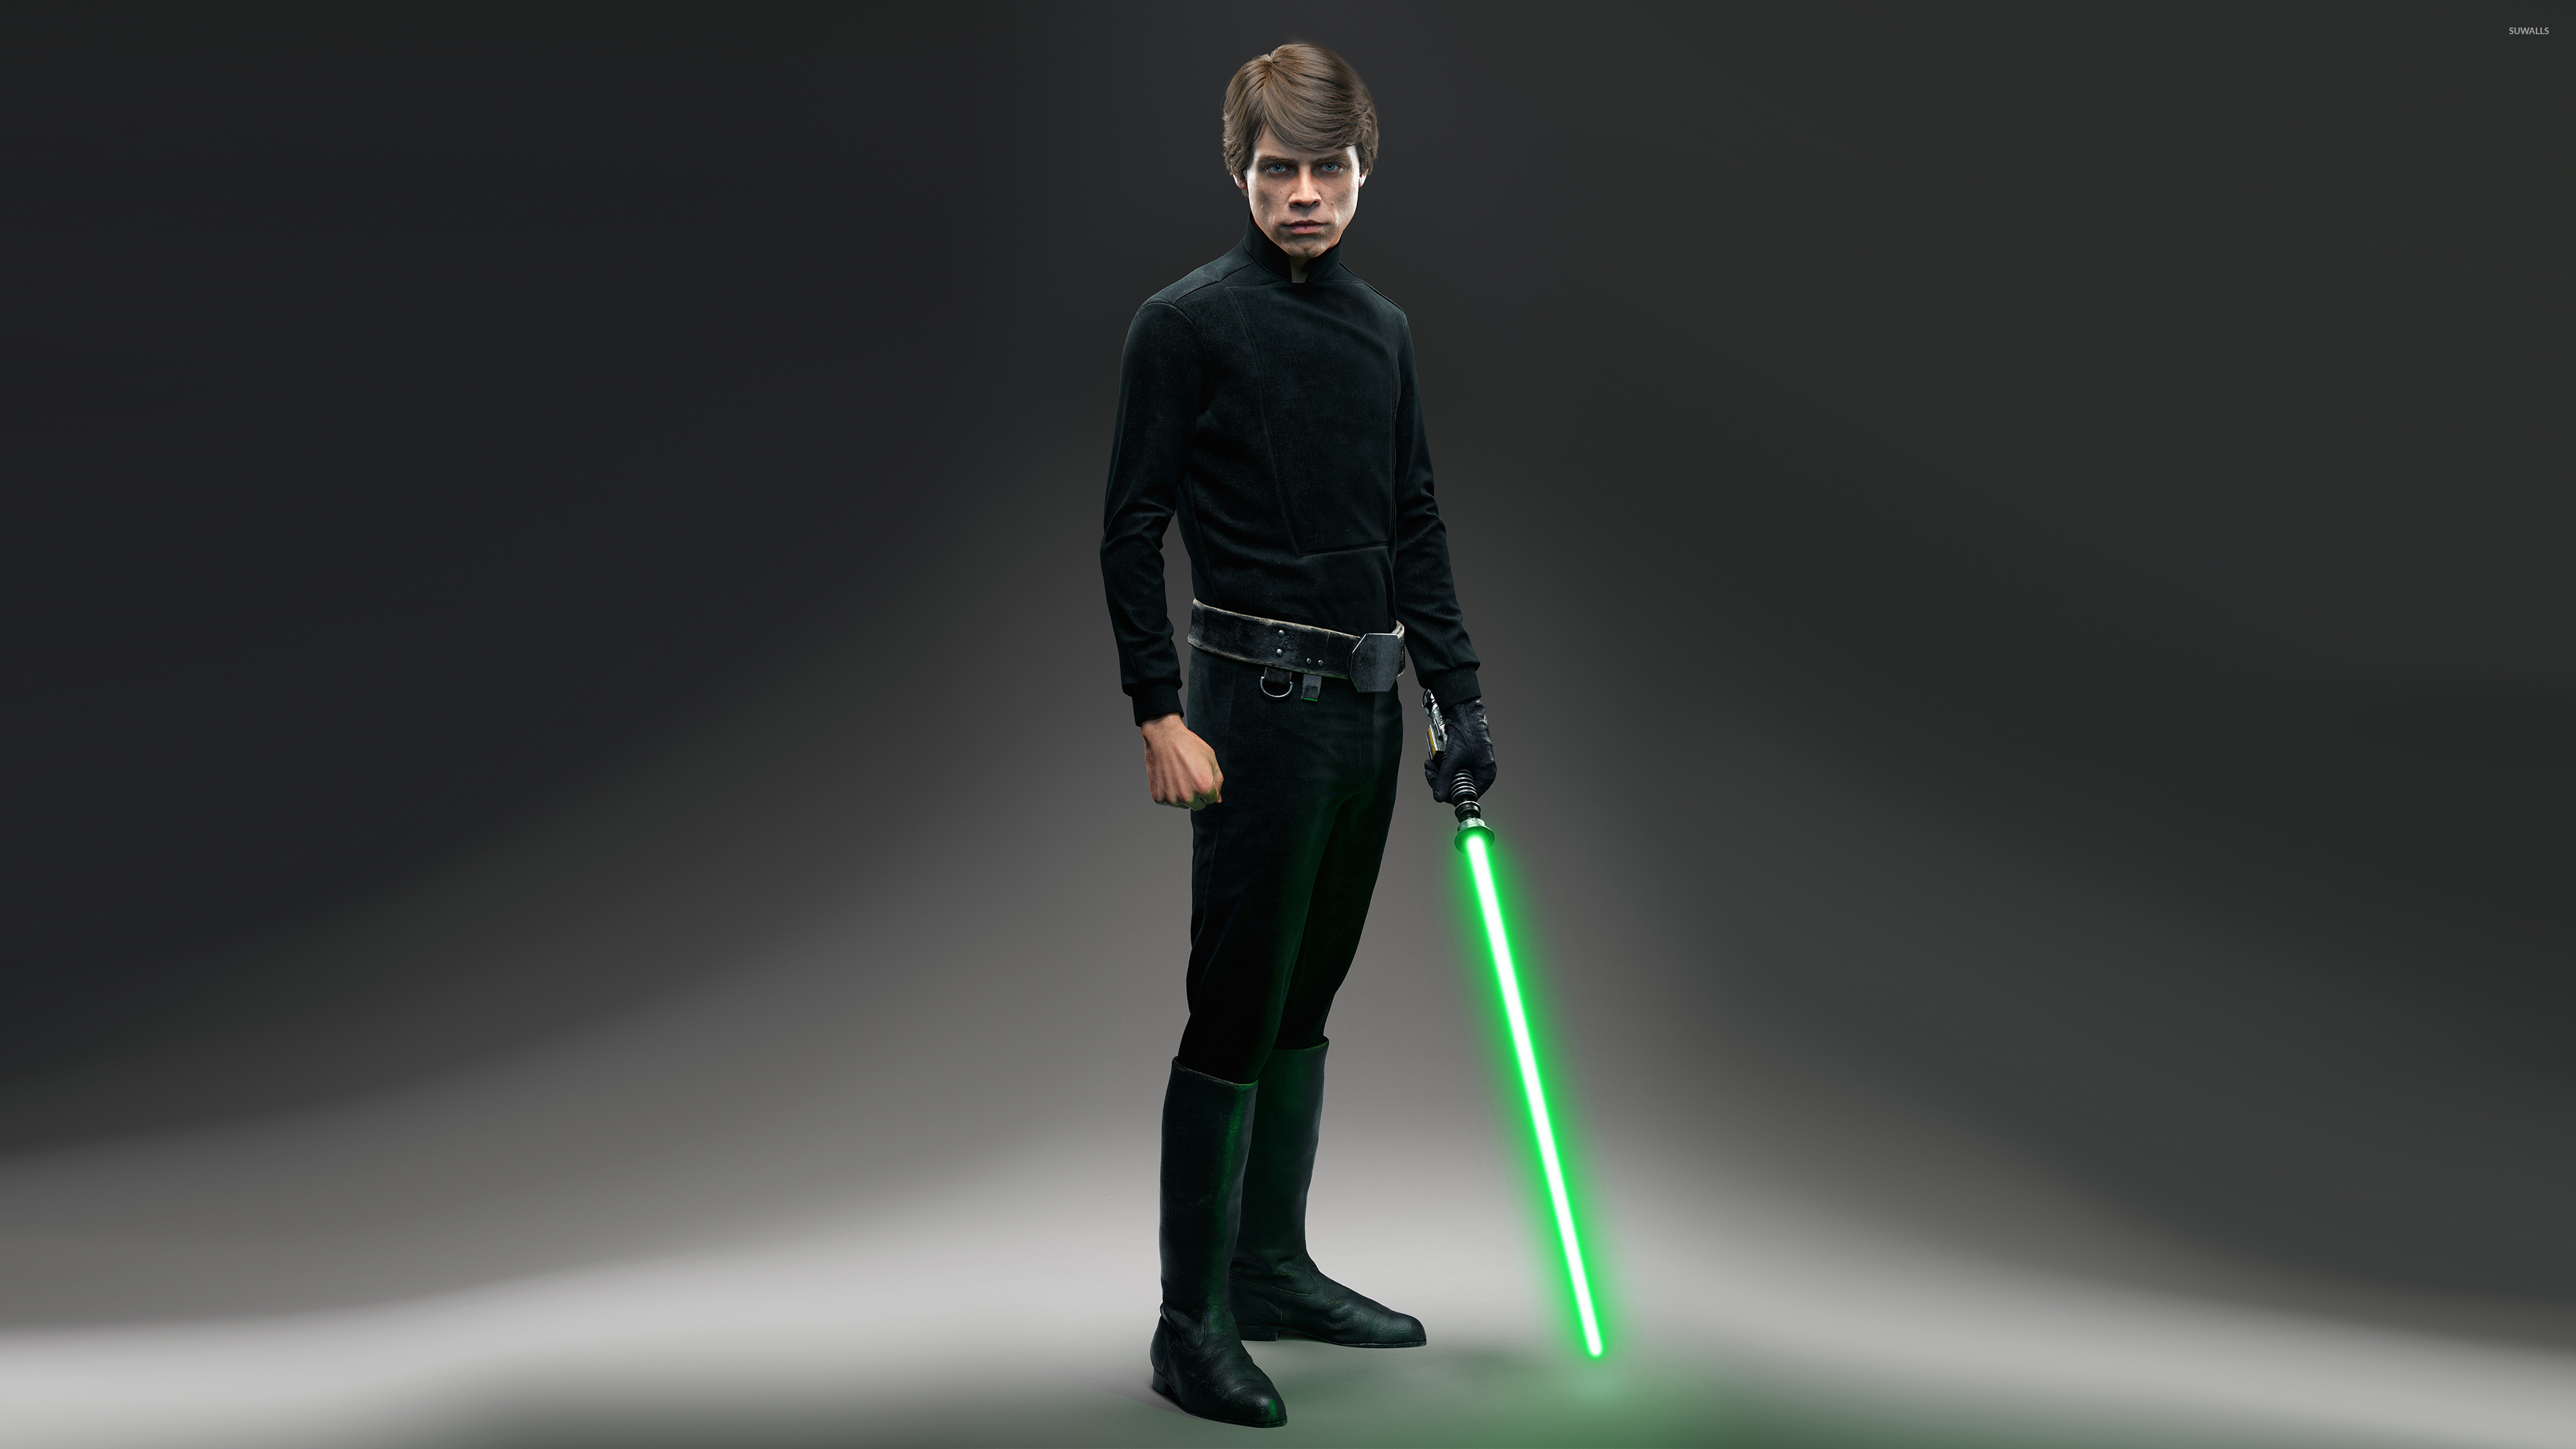 Luke Skywalker Star Wars Battlefront Wallpaper Game Wallpapers